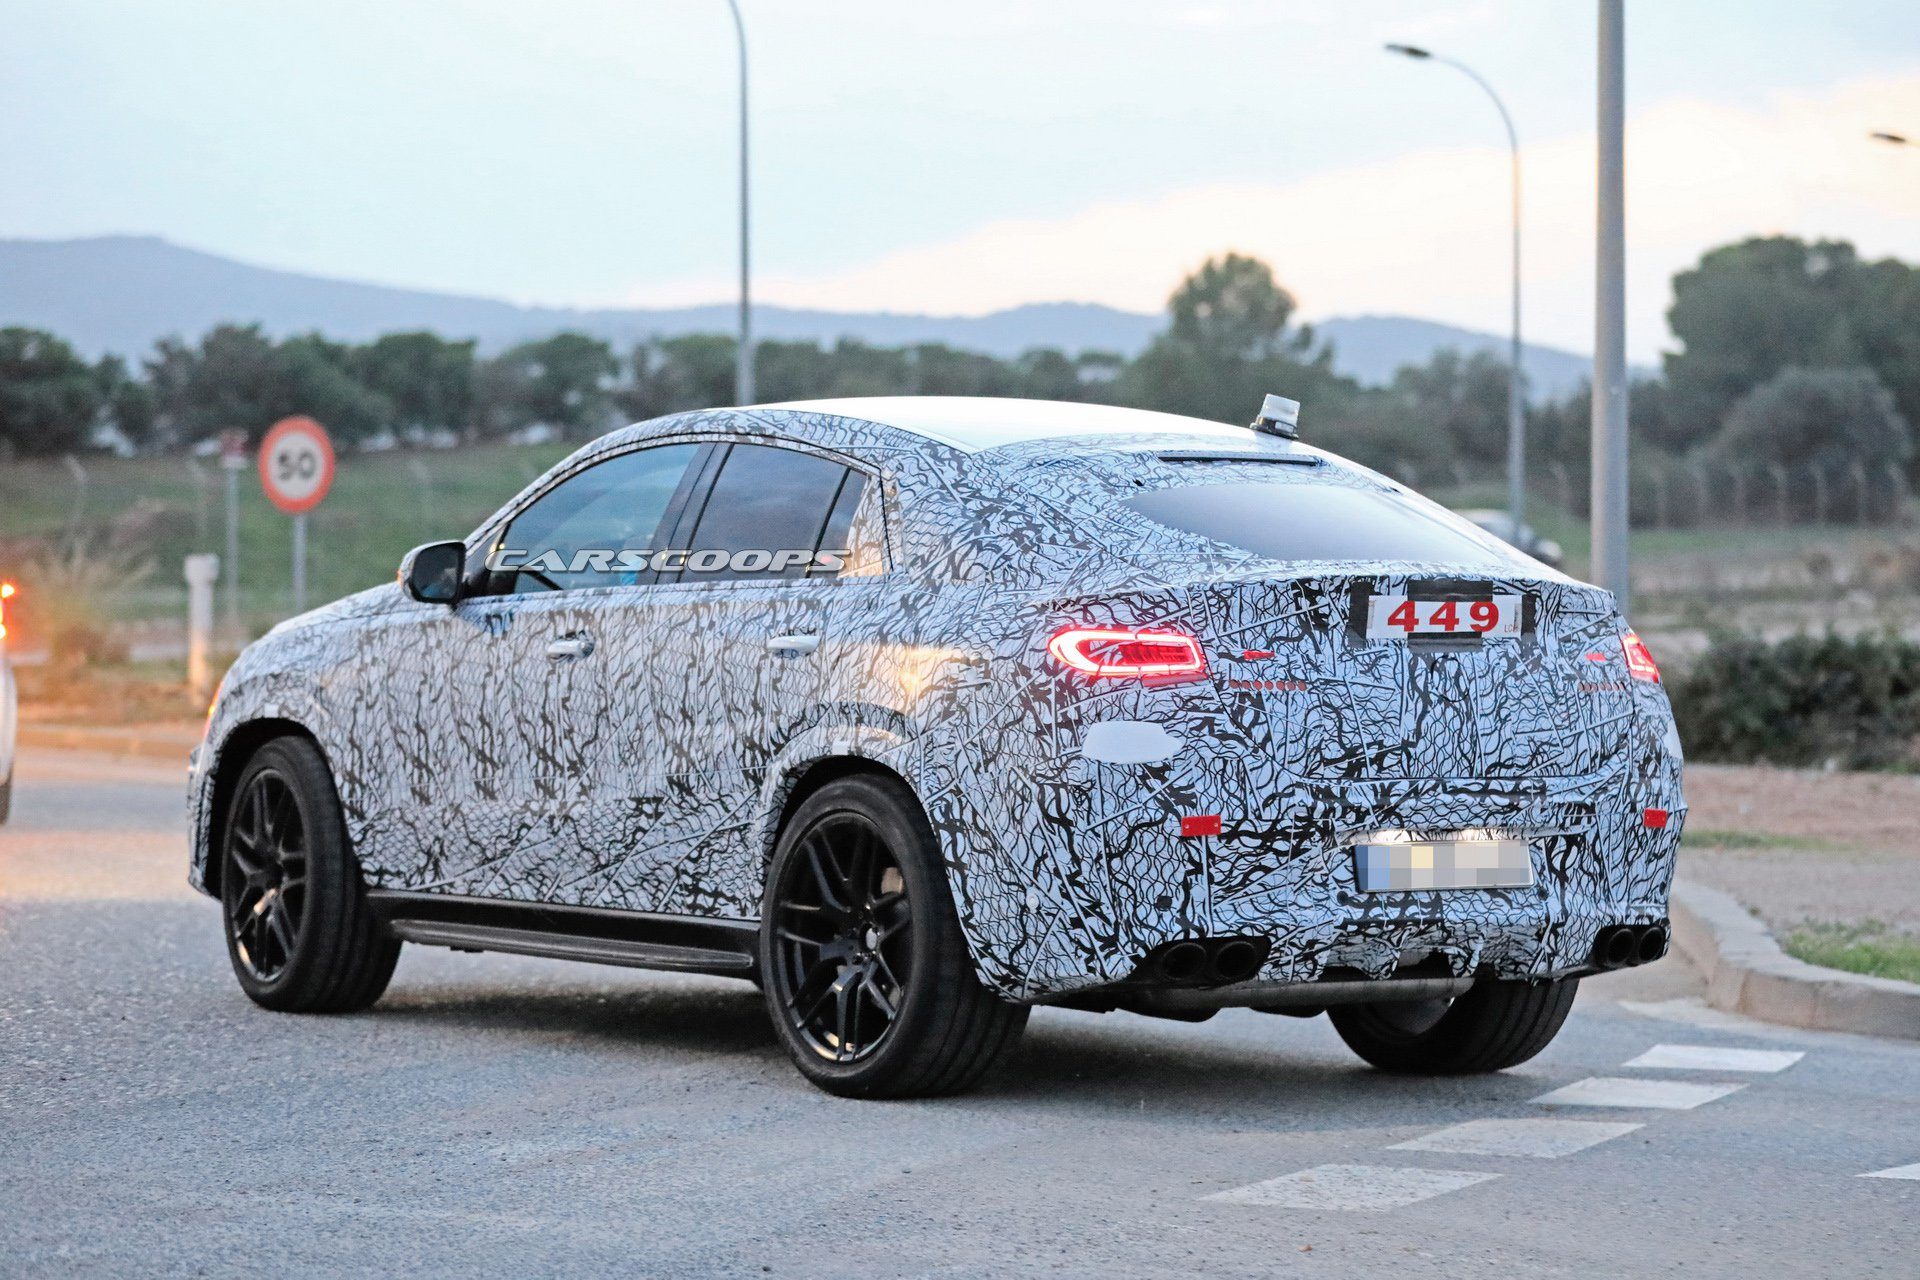 2020 Mercedes-Benz GLE Coupe reveals its sexy looks - MercedesBlog